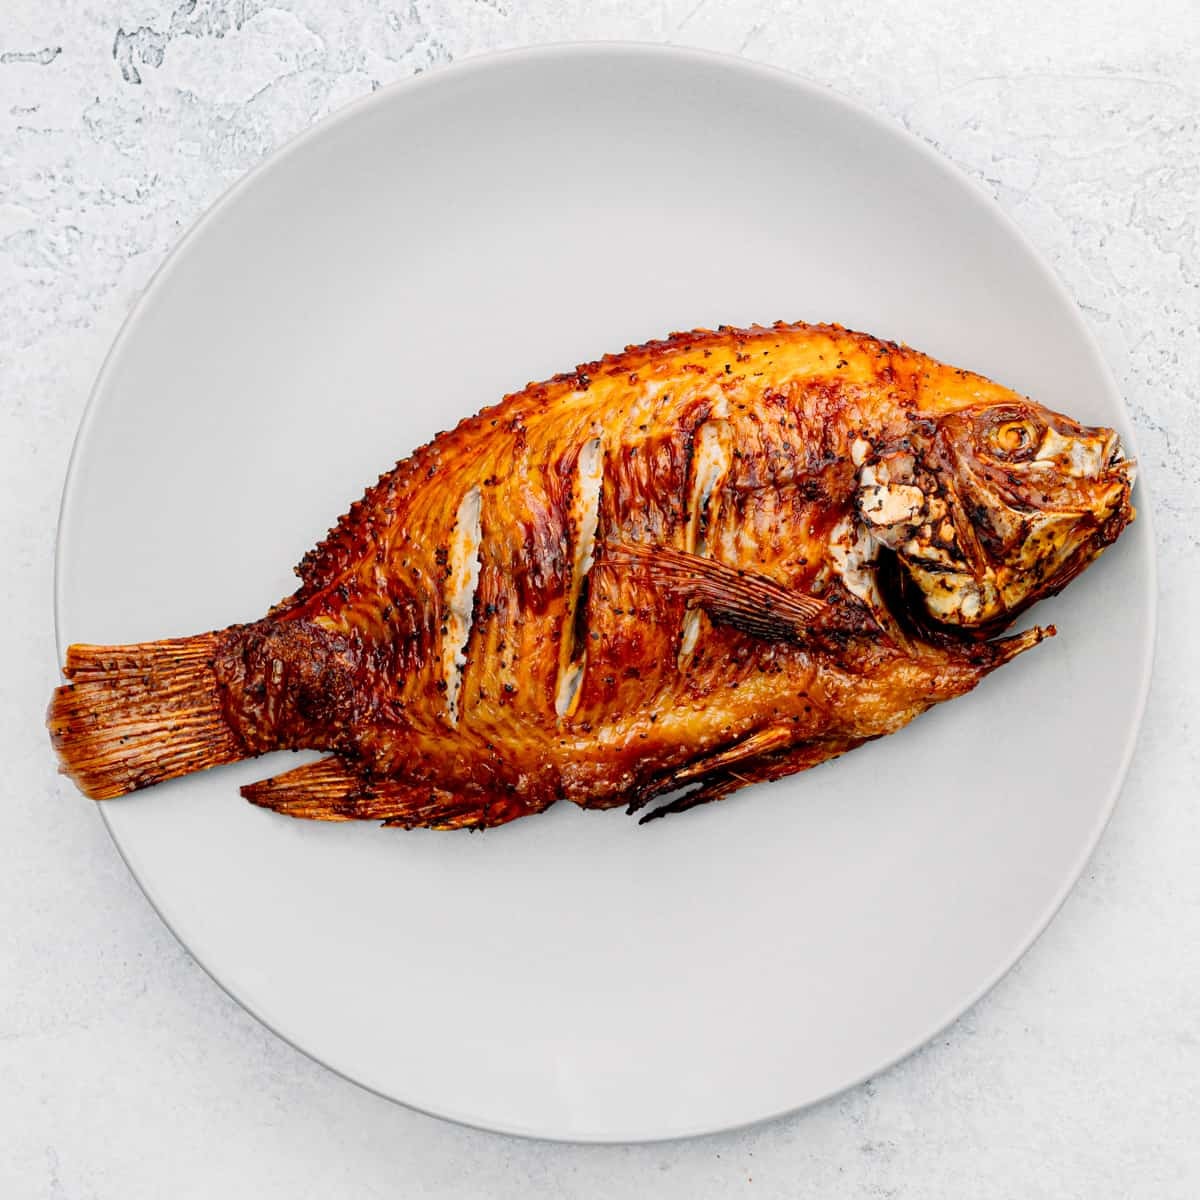 crispy fried fish without a ton of oil.